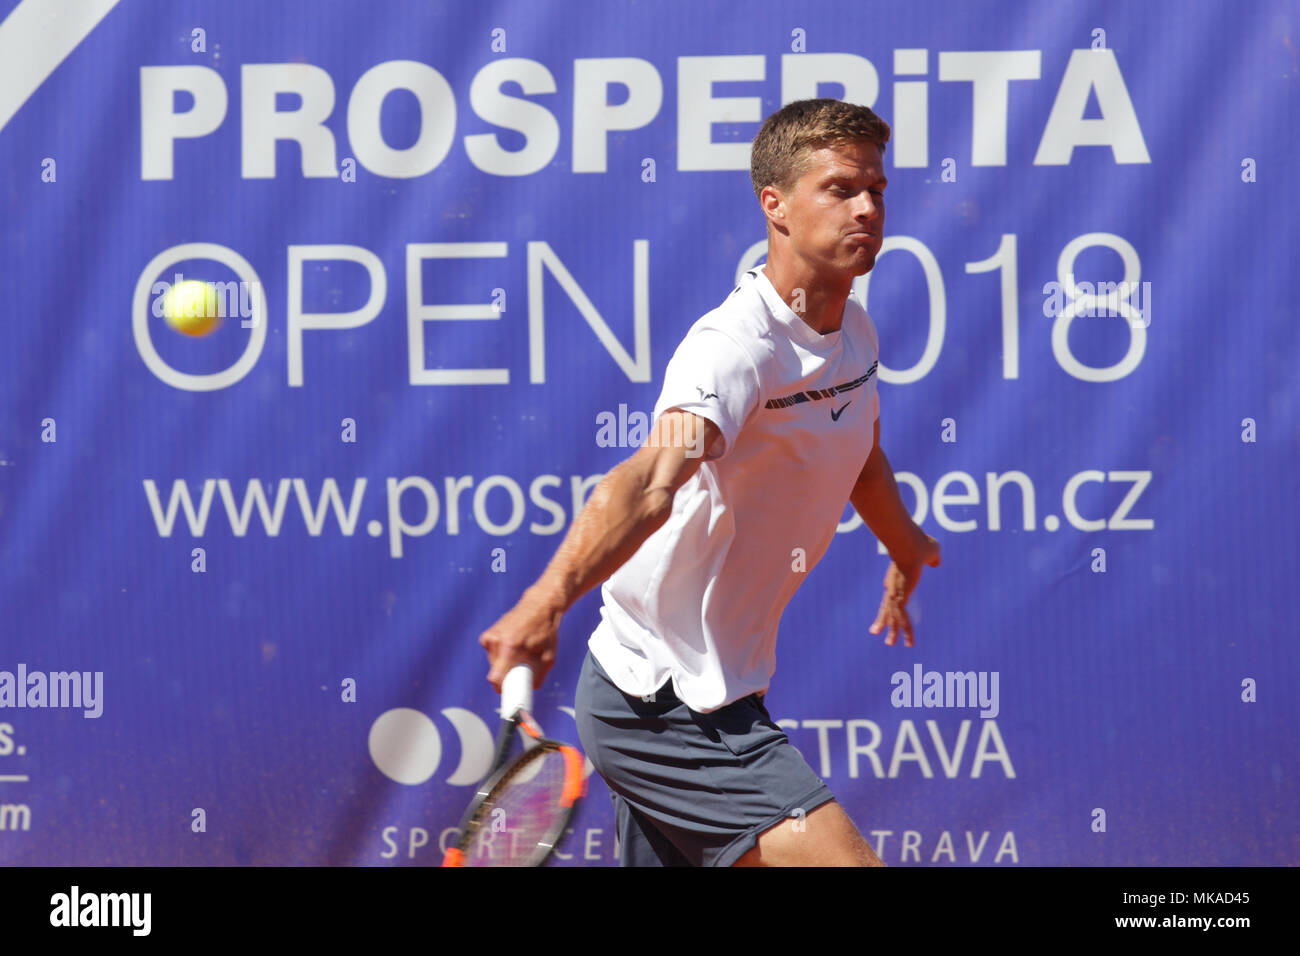 Ostrava, Czech Republic. 06th May, 2018. Tennis player NINO SERDARUSIC of Croatia in action during the match against Belgian player De Greef at the Prosperita Open men's tennis challenger tournament in Ostrava, Czech Republic, May 6, 2018. Credit: Petr Sznapka/CTK Photo/Alamy Live News - Stock Image